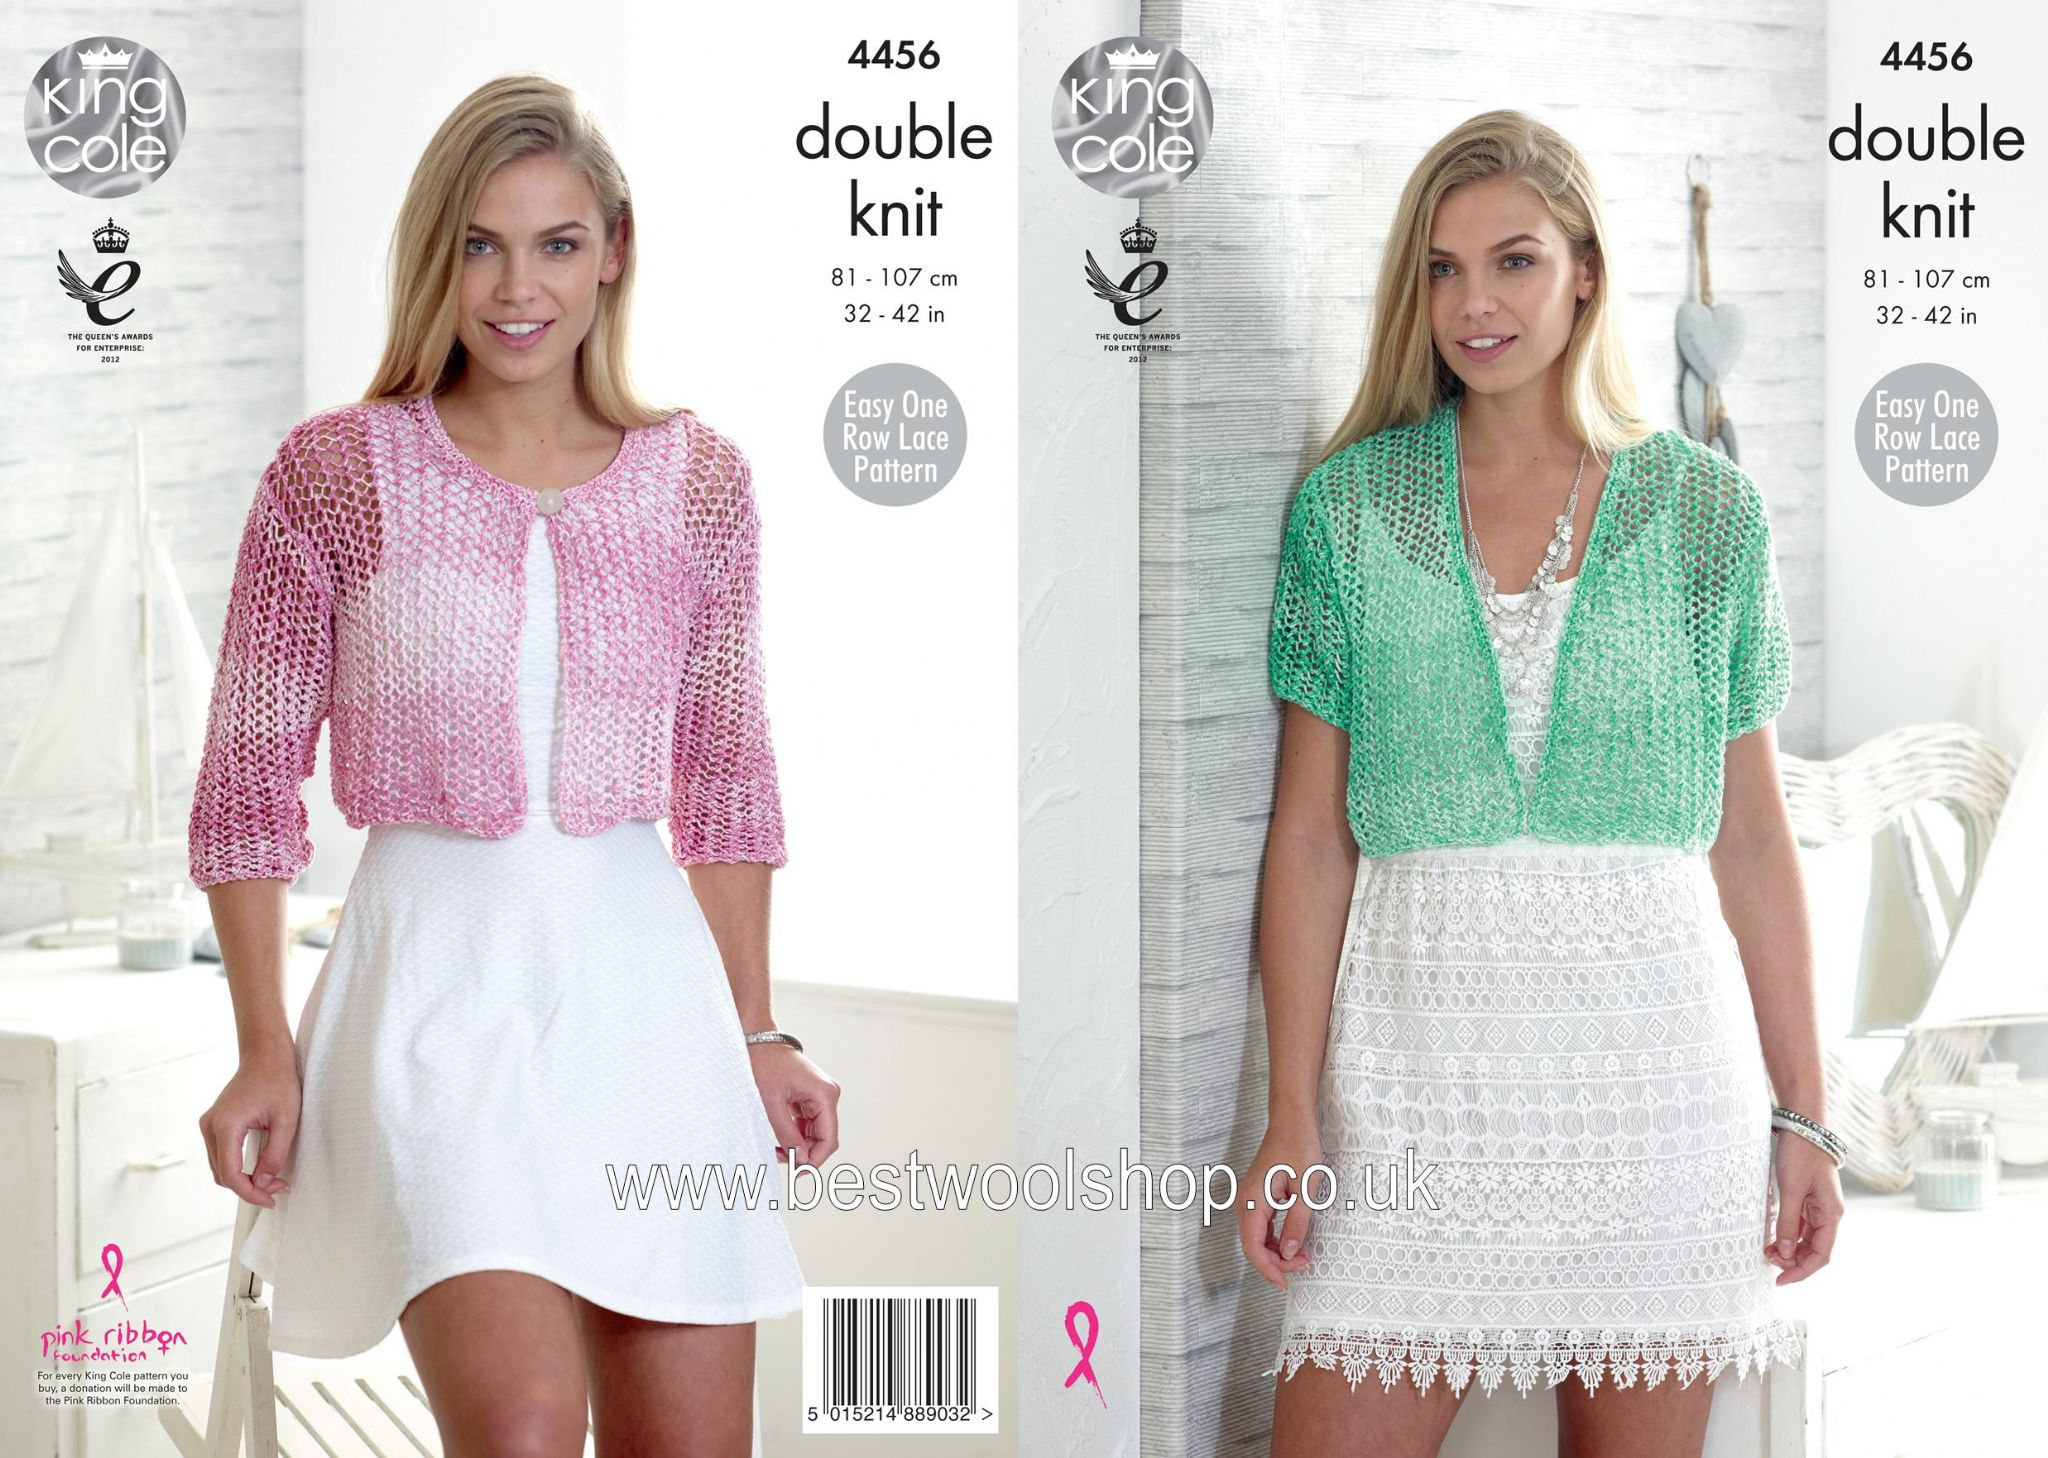 4456 - KING COLE VOGUE DK ONE ROW LACE PATTERN ROUND & V NECK CARDIGAN KN...